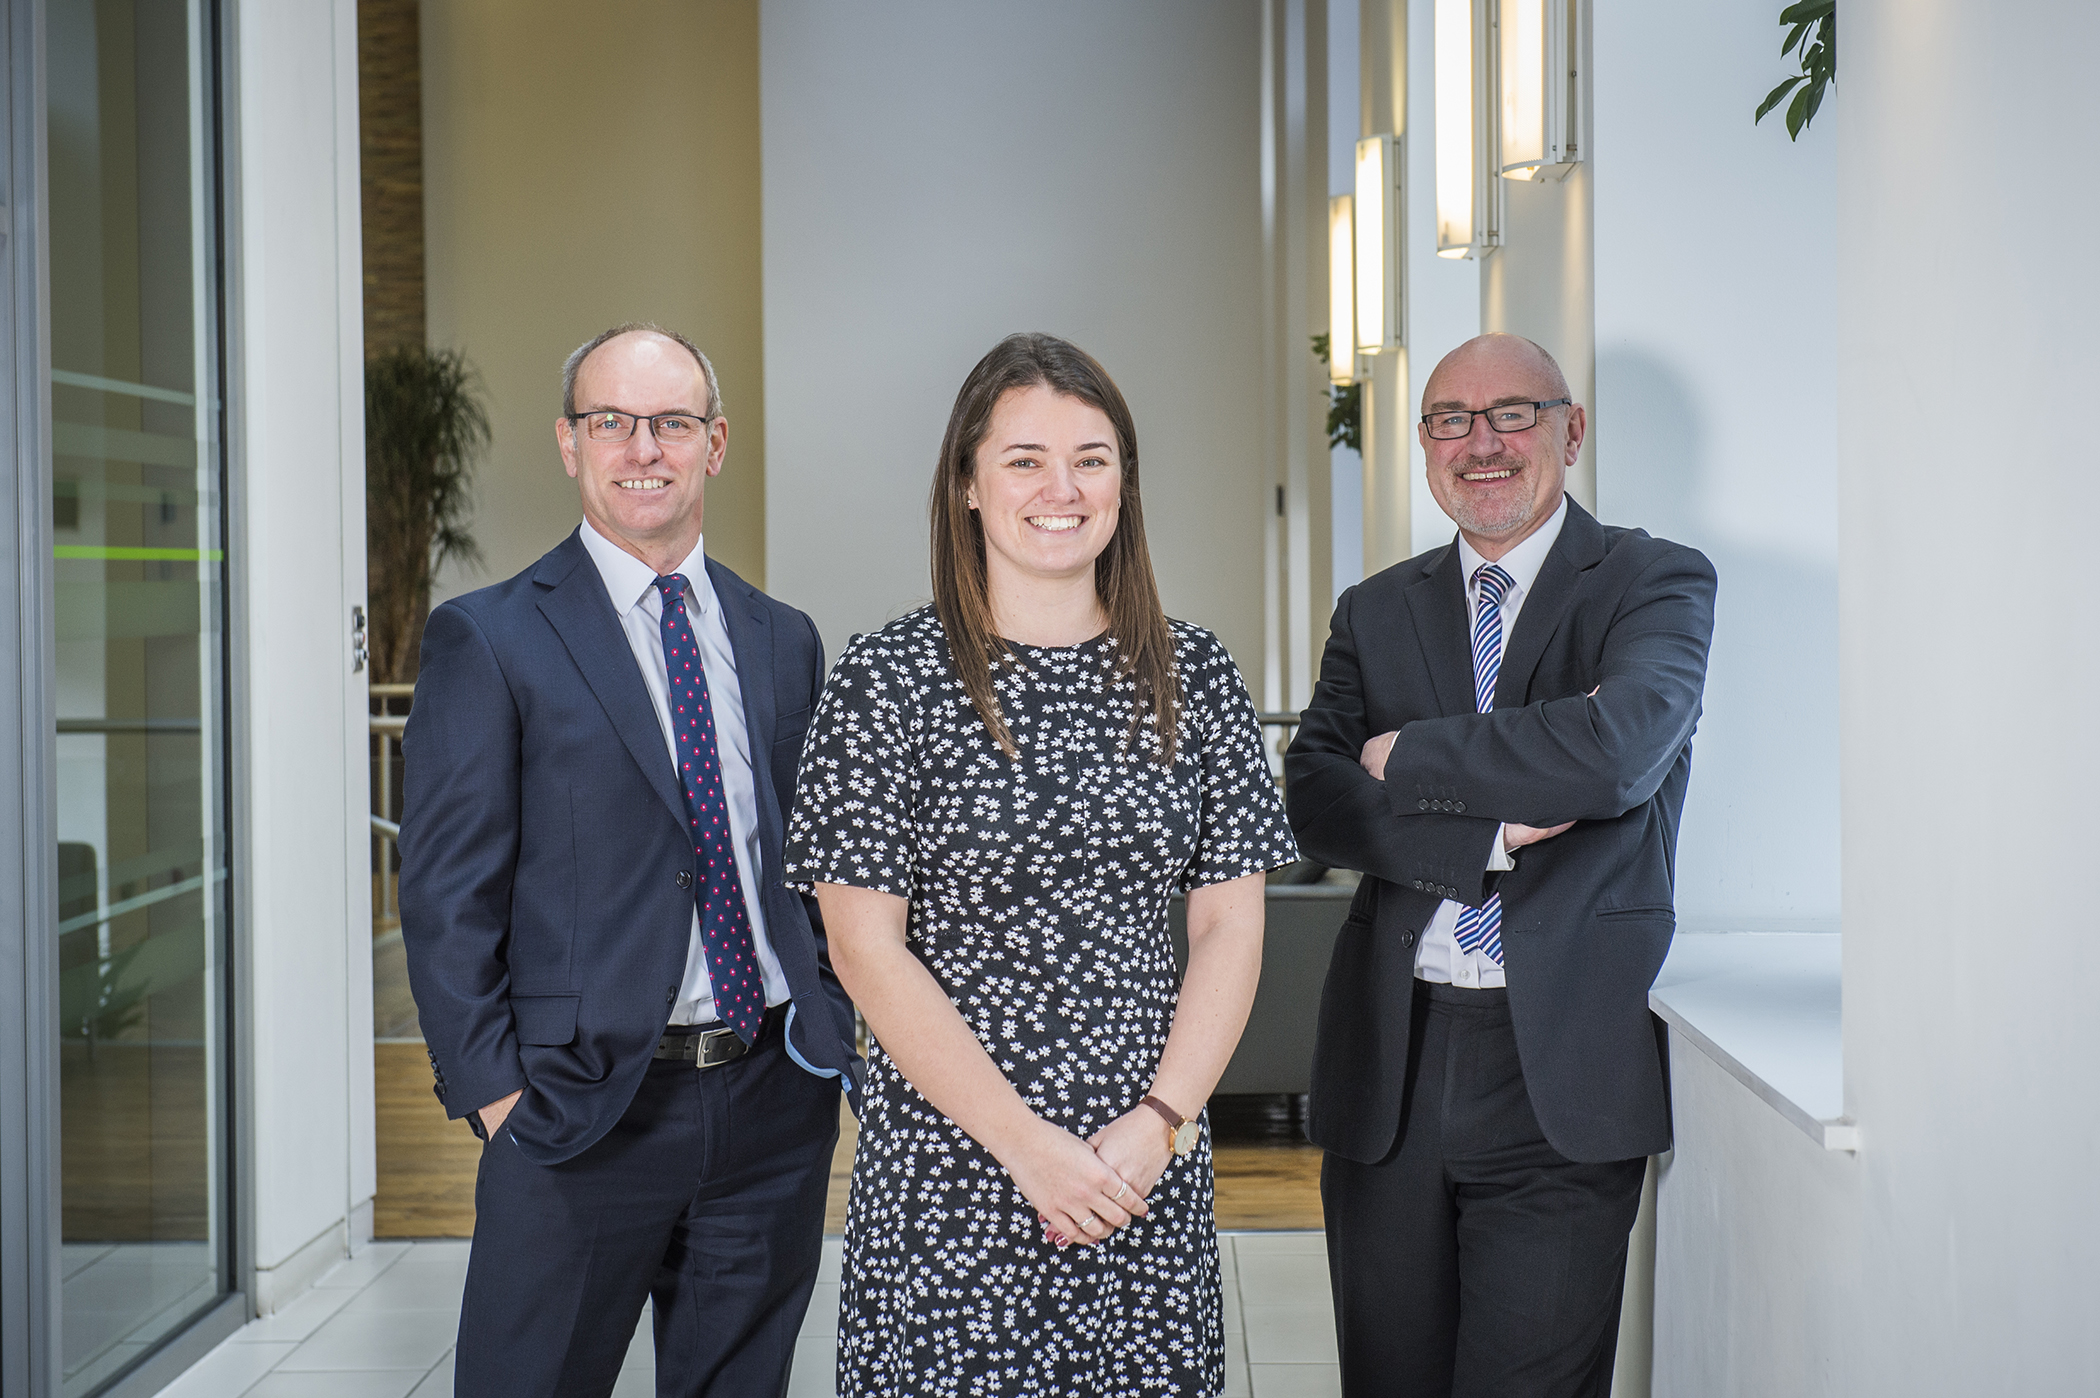 Surveyor joins Bristol office of Colliers International to strengthen its national capital markets team